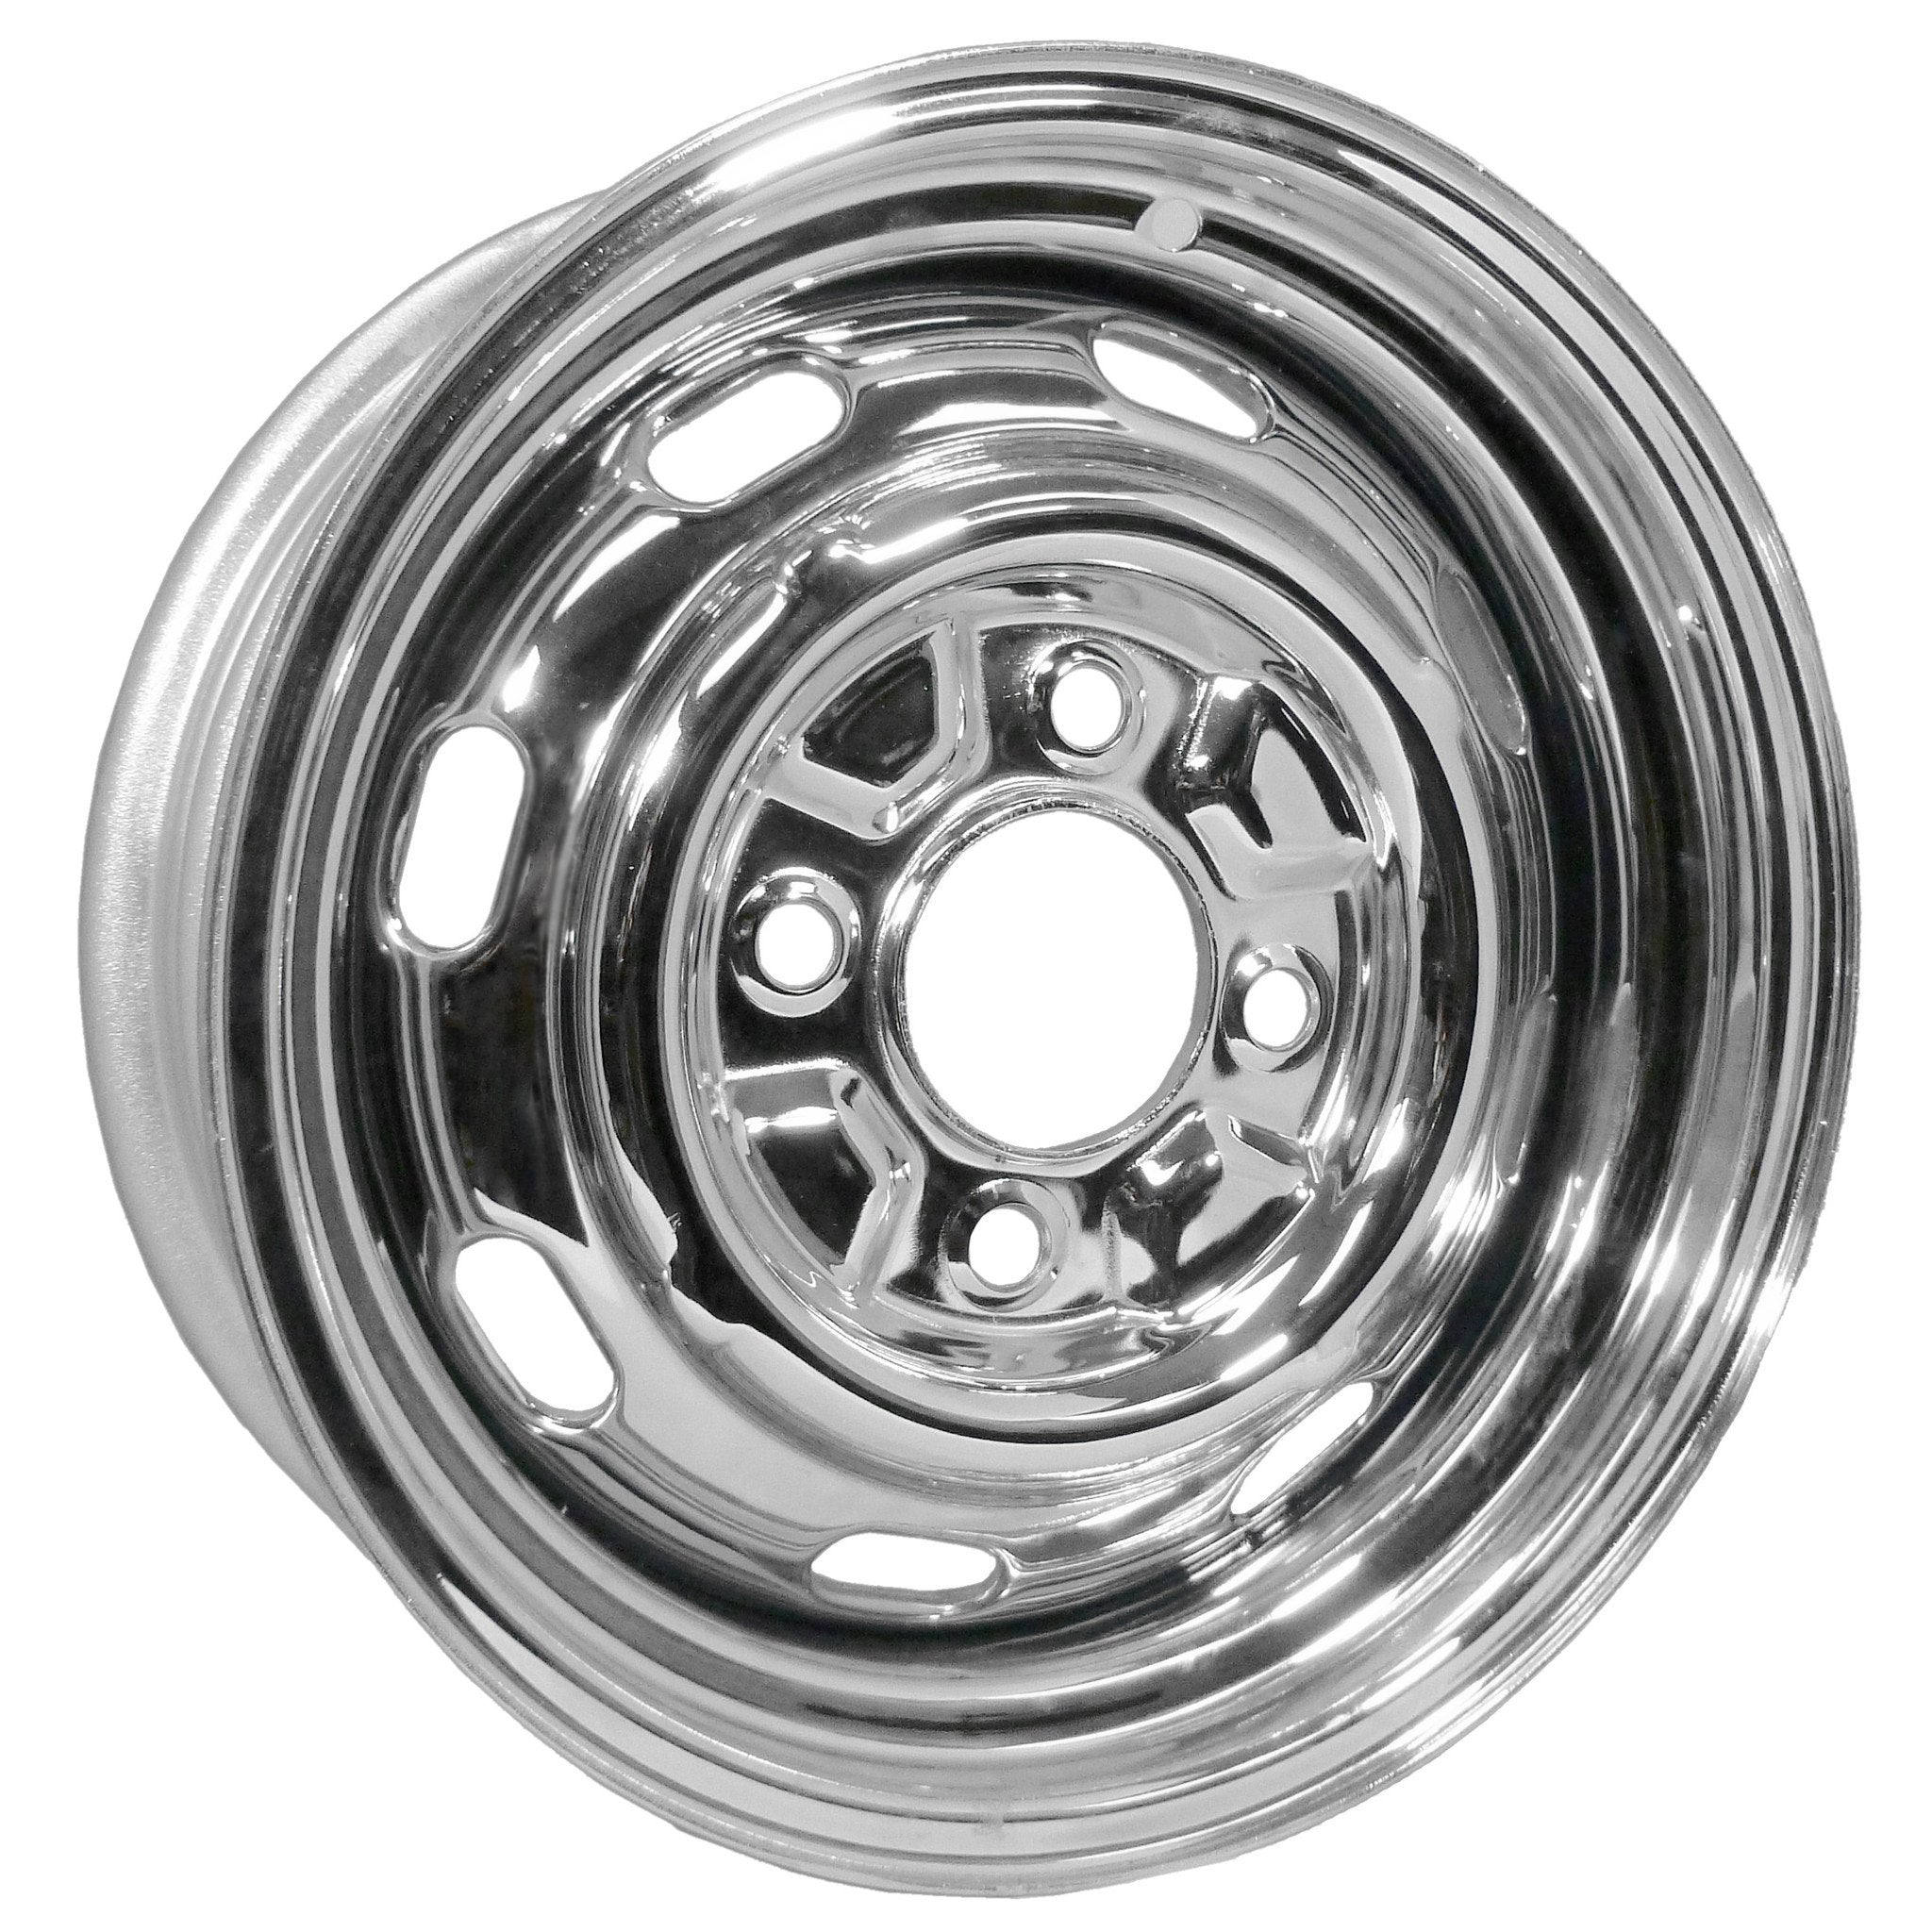 Rims Chrome 175 v=